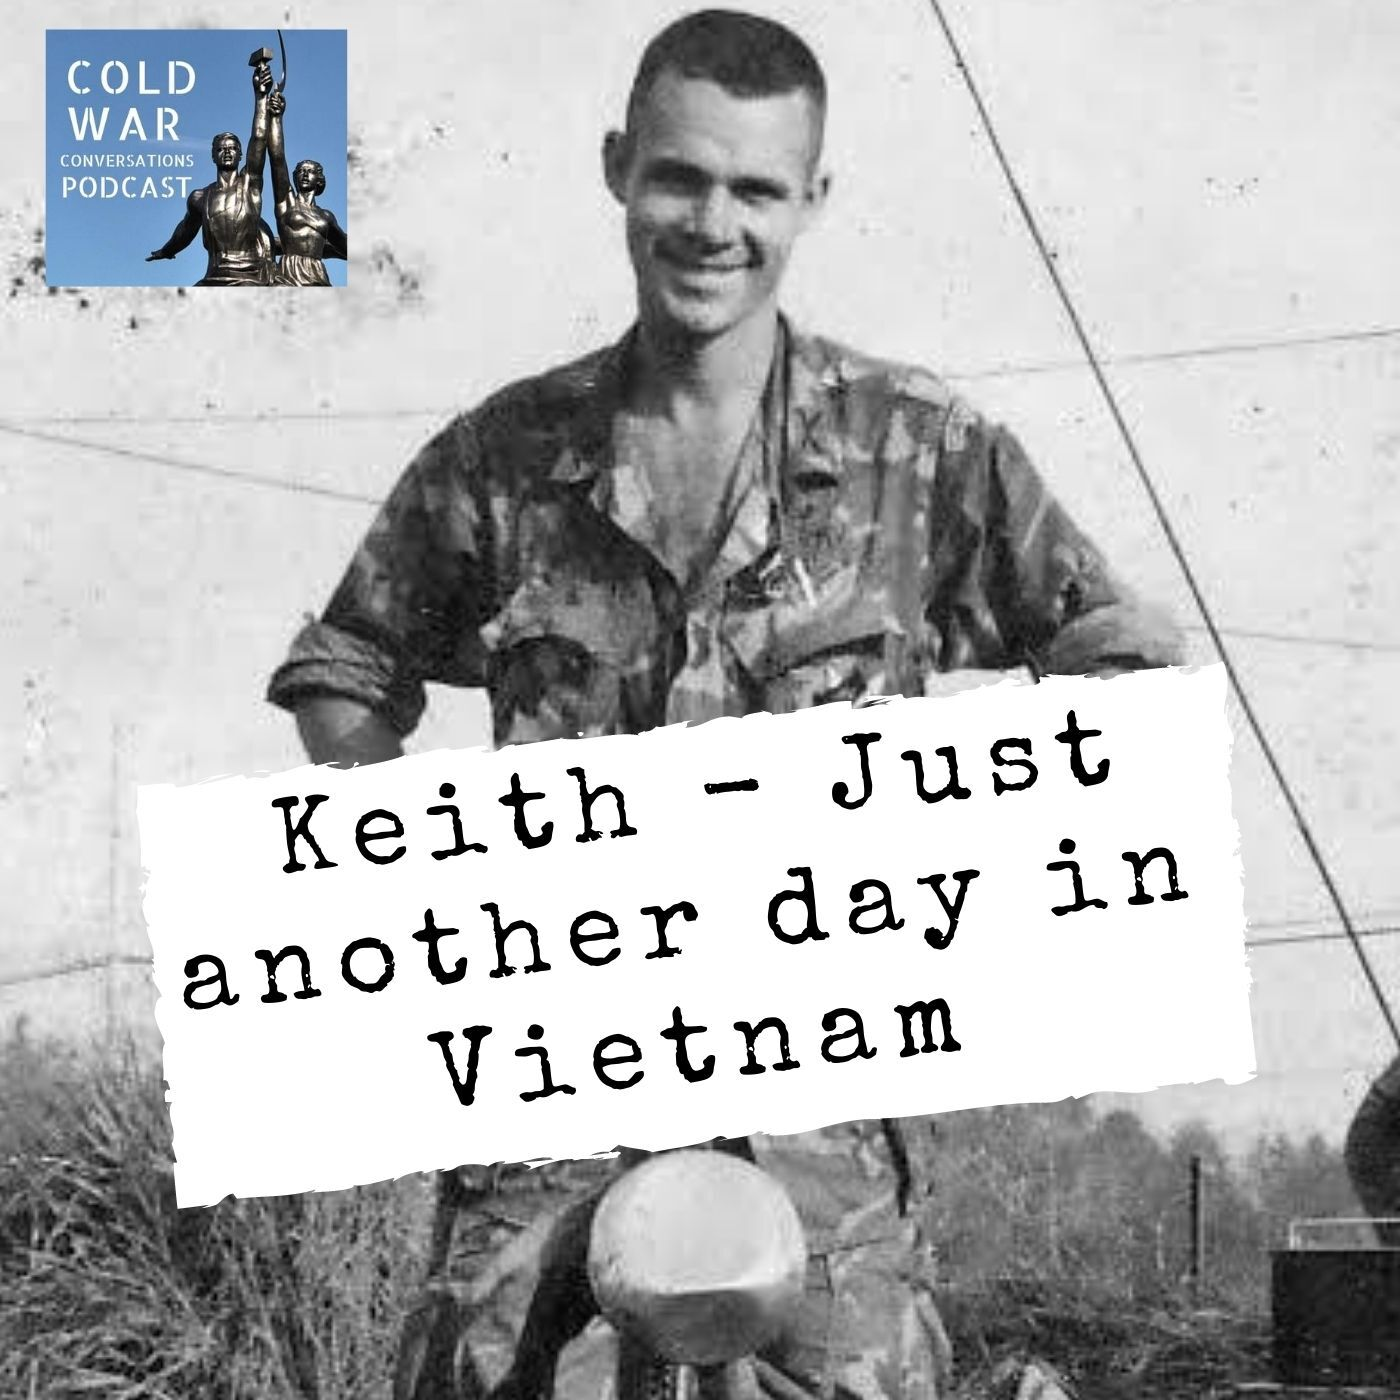 Just another day in Vietnam (153)